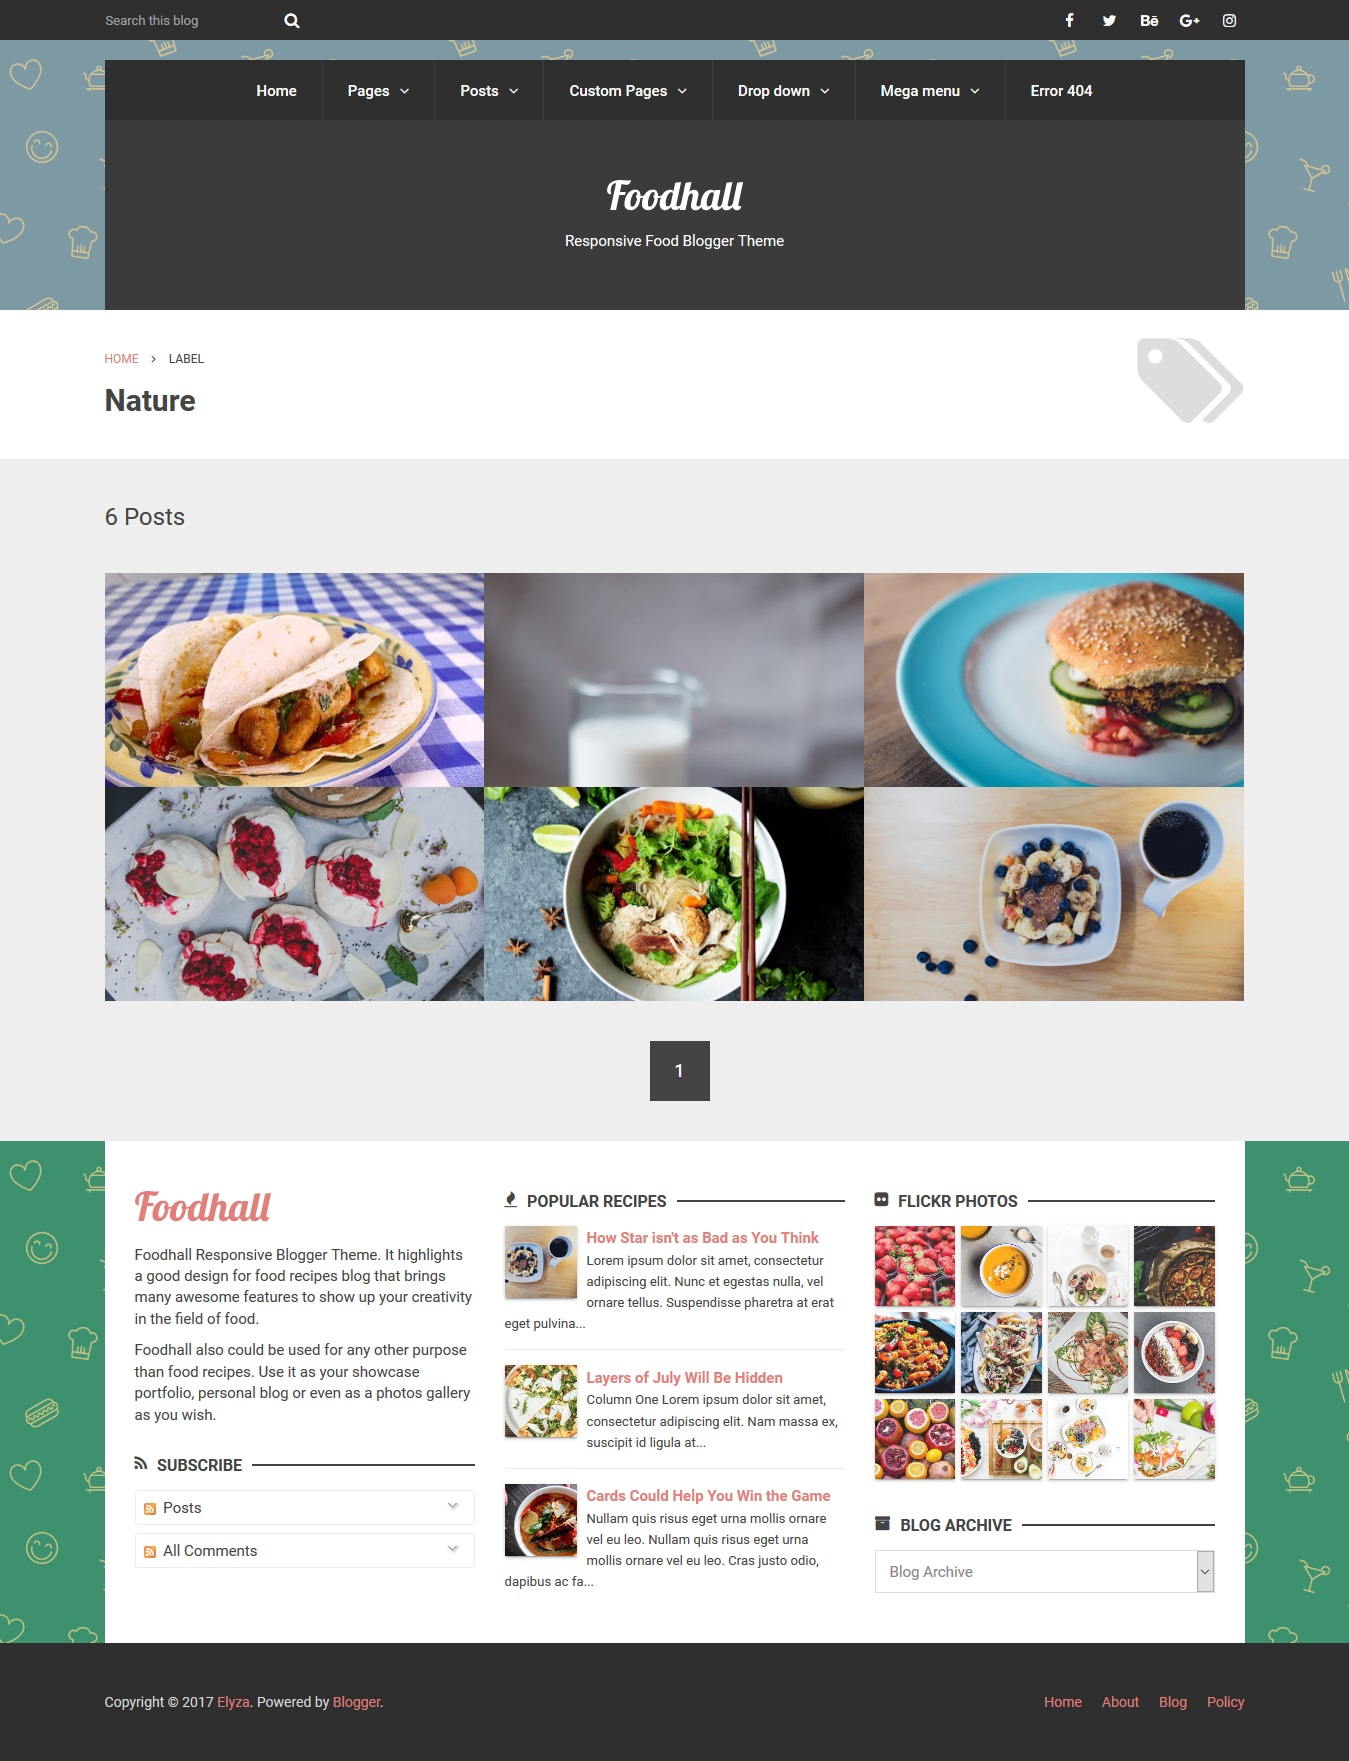 Foodhall responsive food blogger theme by elyza themeforest foodhall responsive food blogger theme forumfinder Image collections